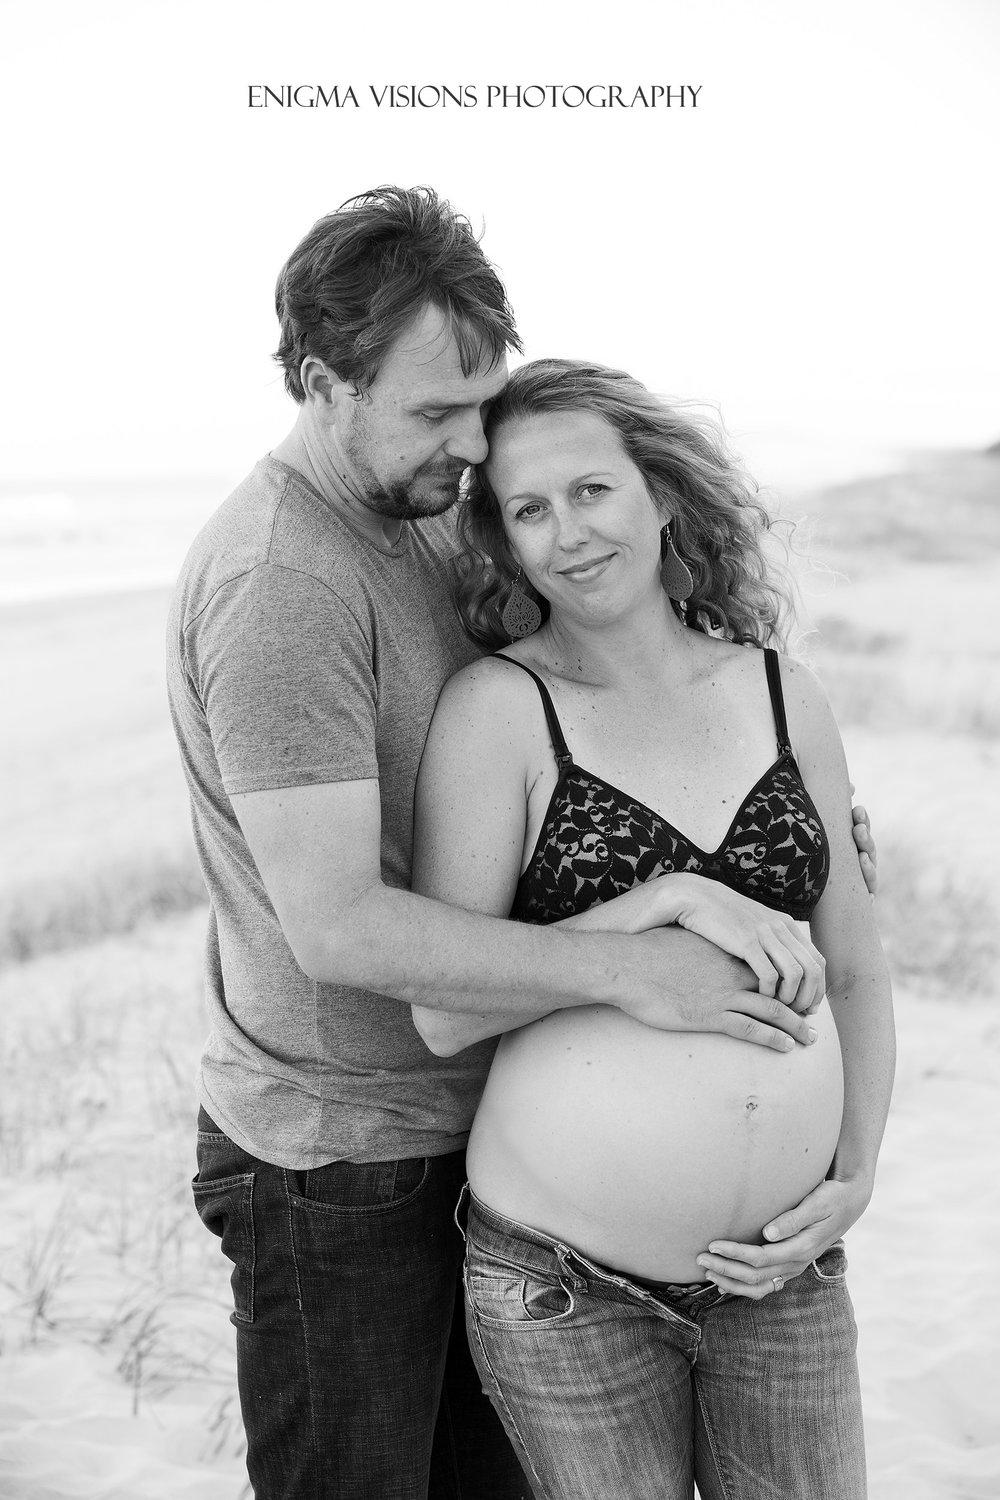 enigma_visions_photography_maternity_melandandrew_kingscliff (35).jpg